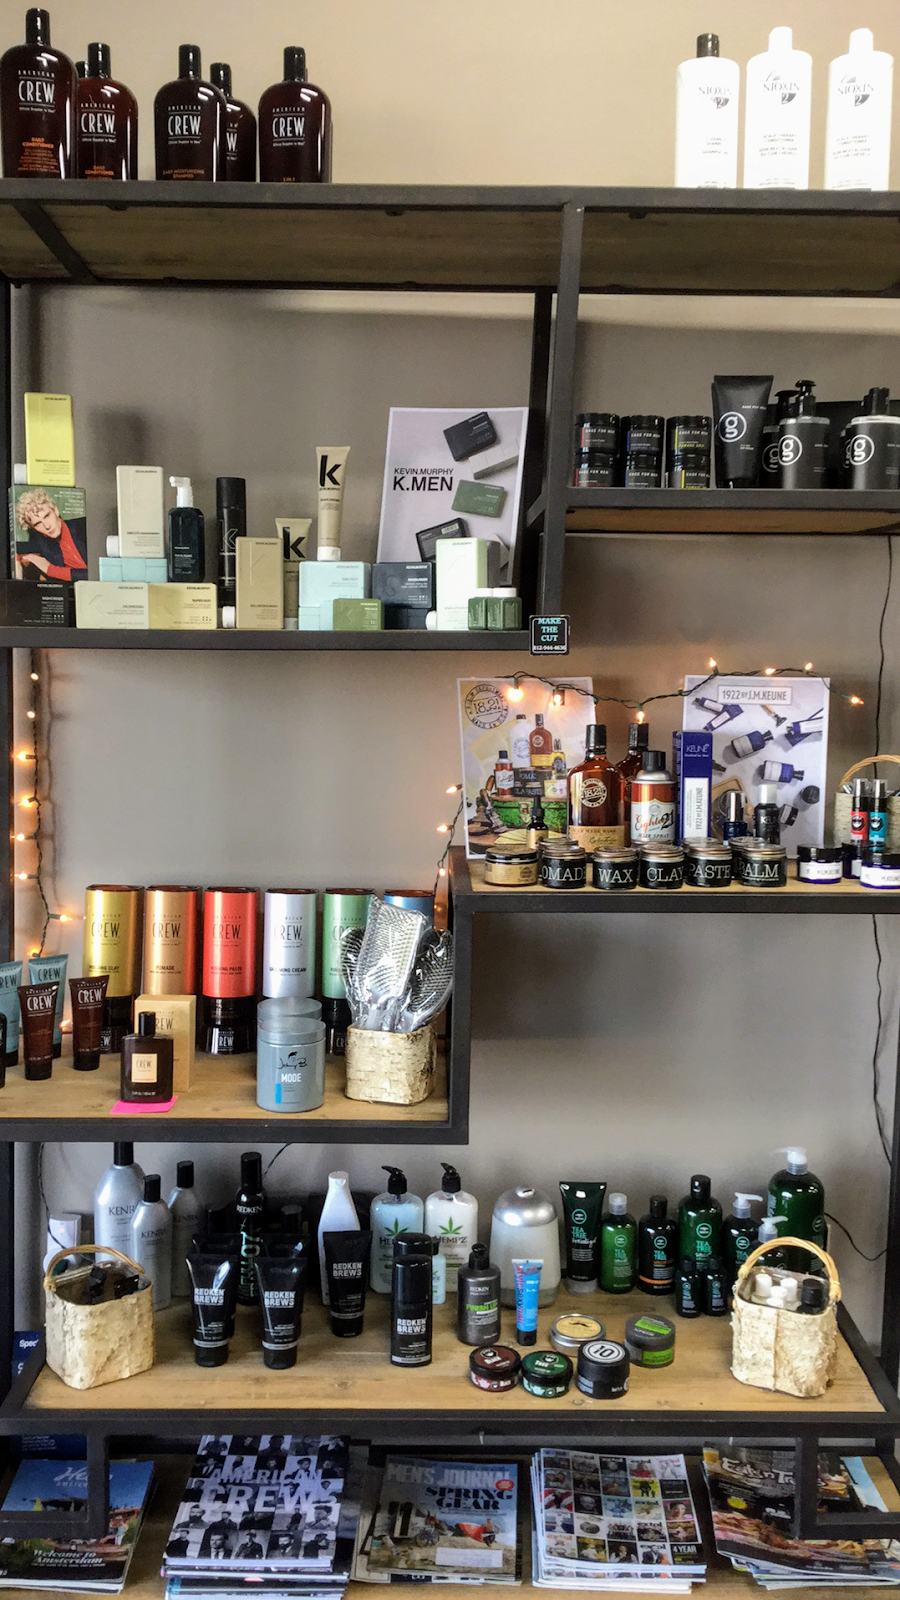 Make the Cut - hair care  | Photo 3 of 10 | Address: 4317 Charlestown Rd # 2, New Albany, IN 47150, USA | Phone: (812) 944-4636